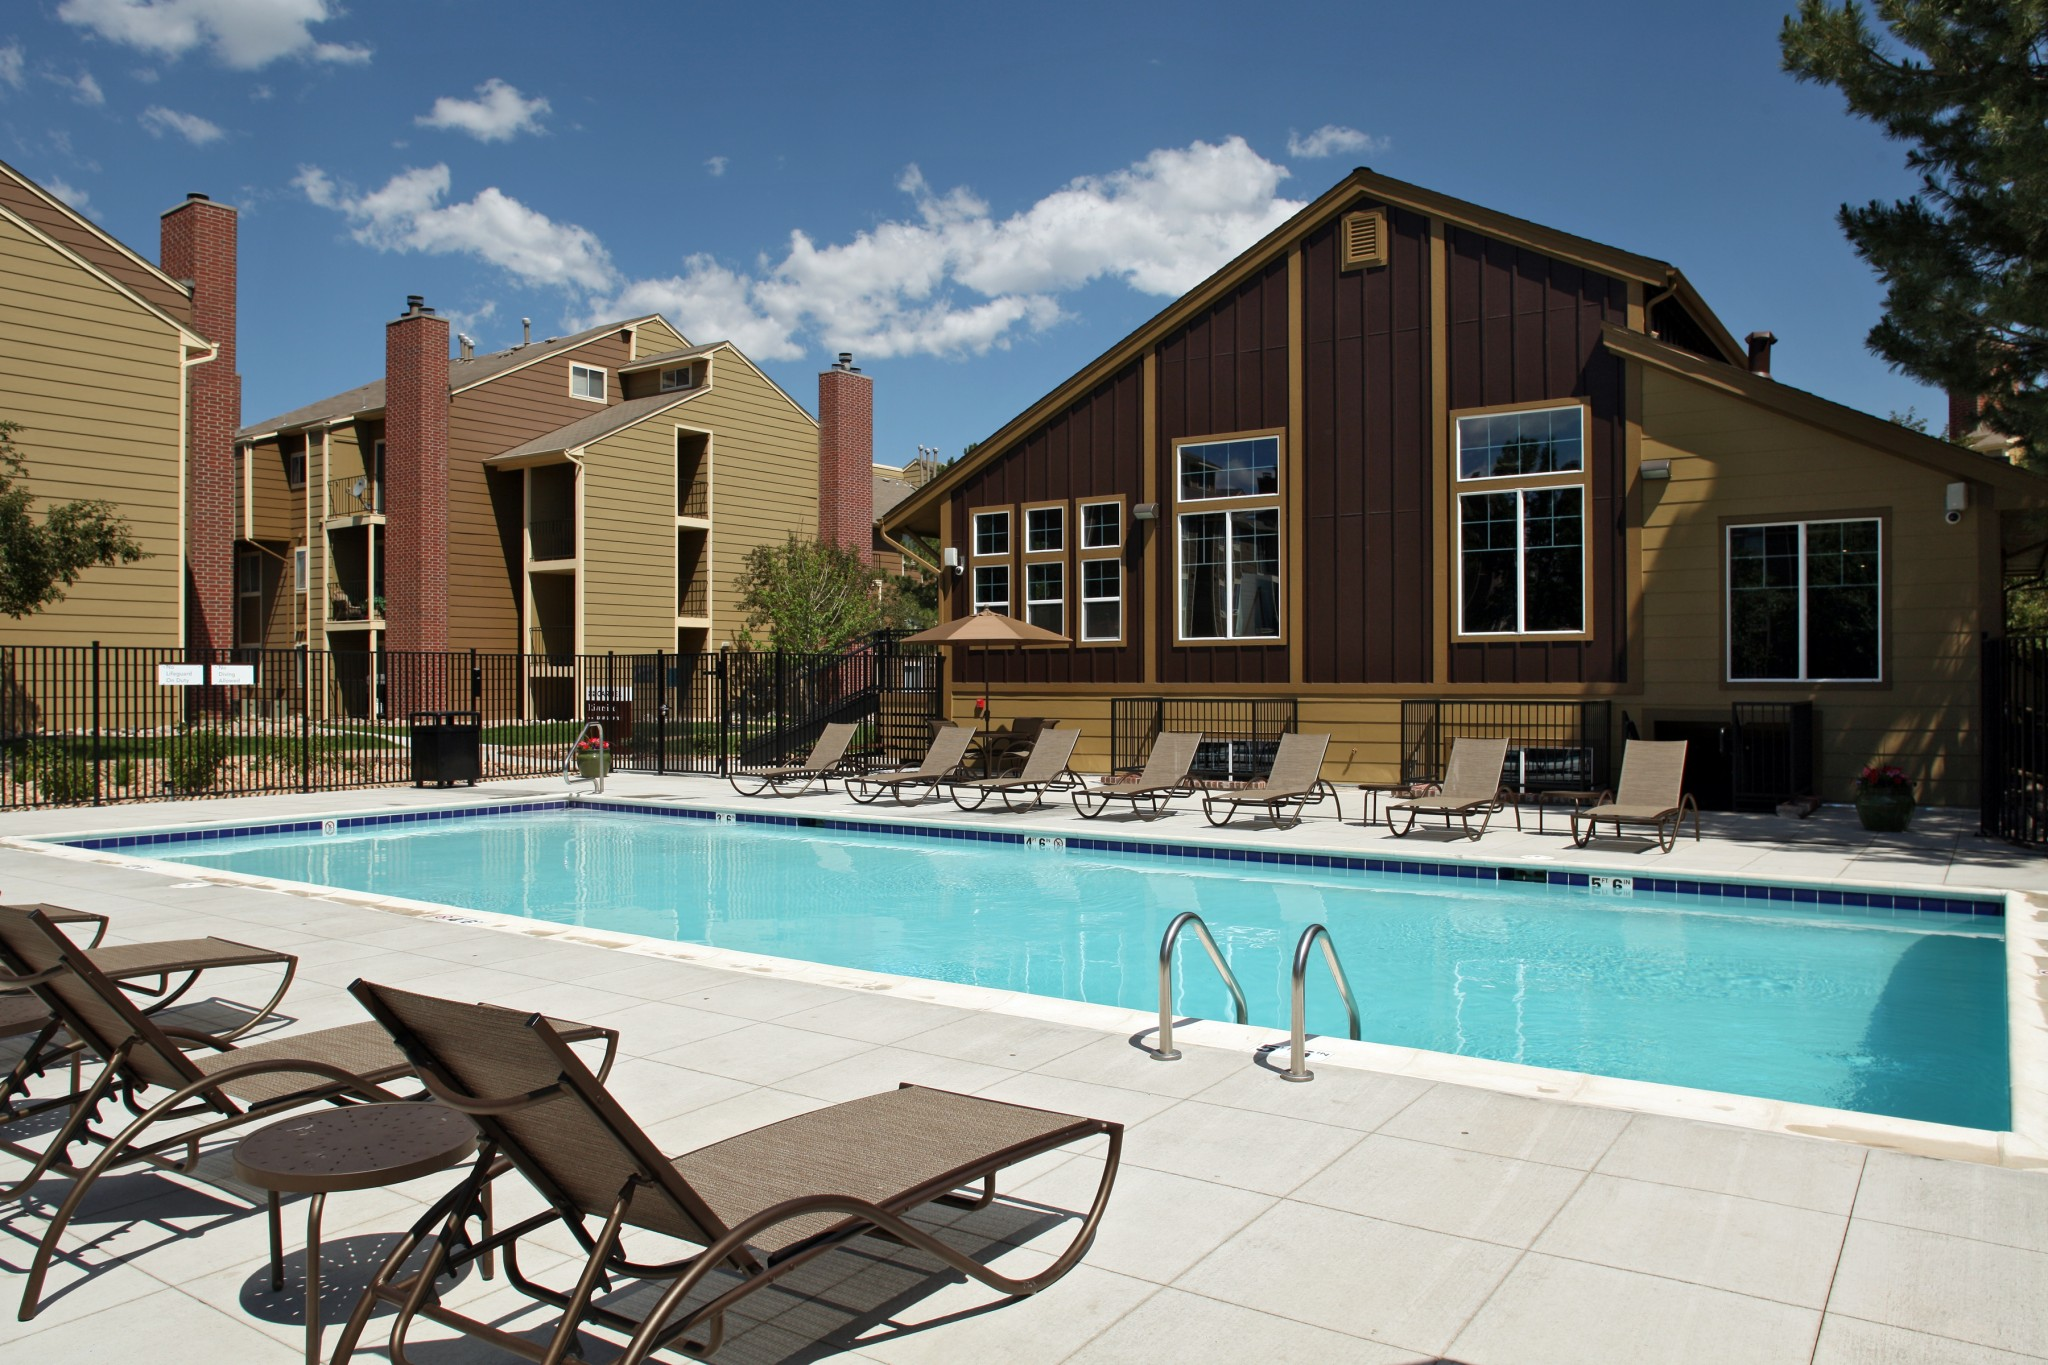 Outdoor pool area with lounge chairs and apartment building in the background.